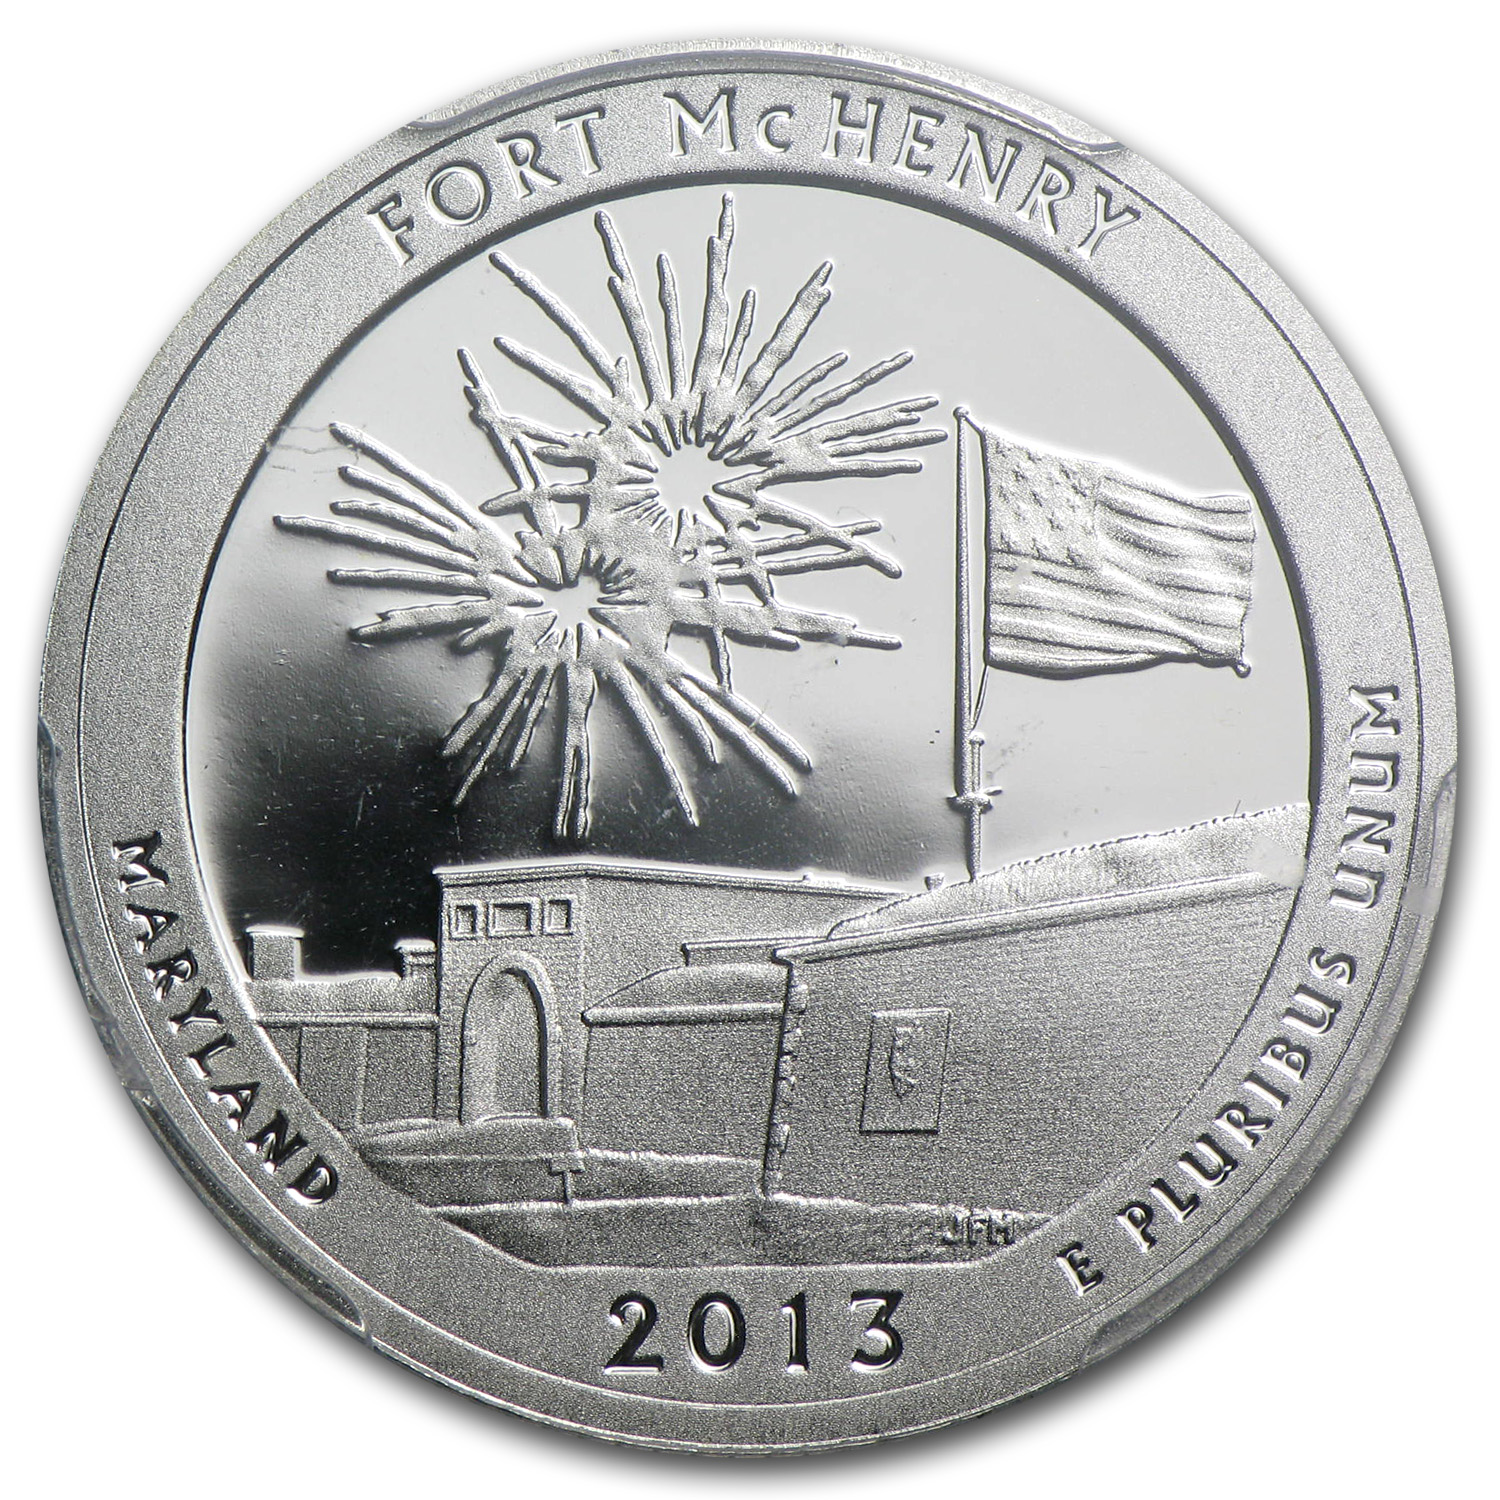 2013 Limited Edition Proof Silver Fort McHenry Quarter PR-69 FS